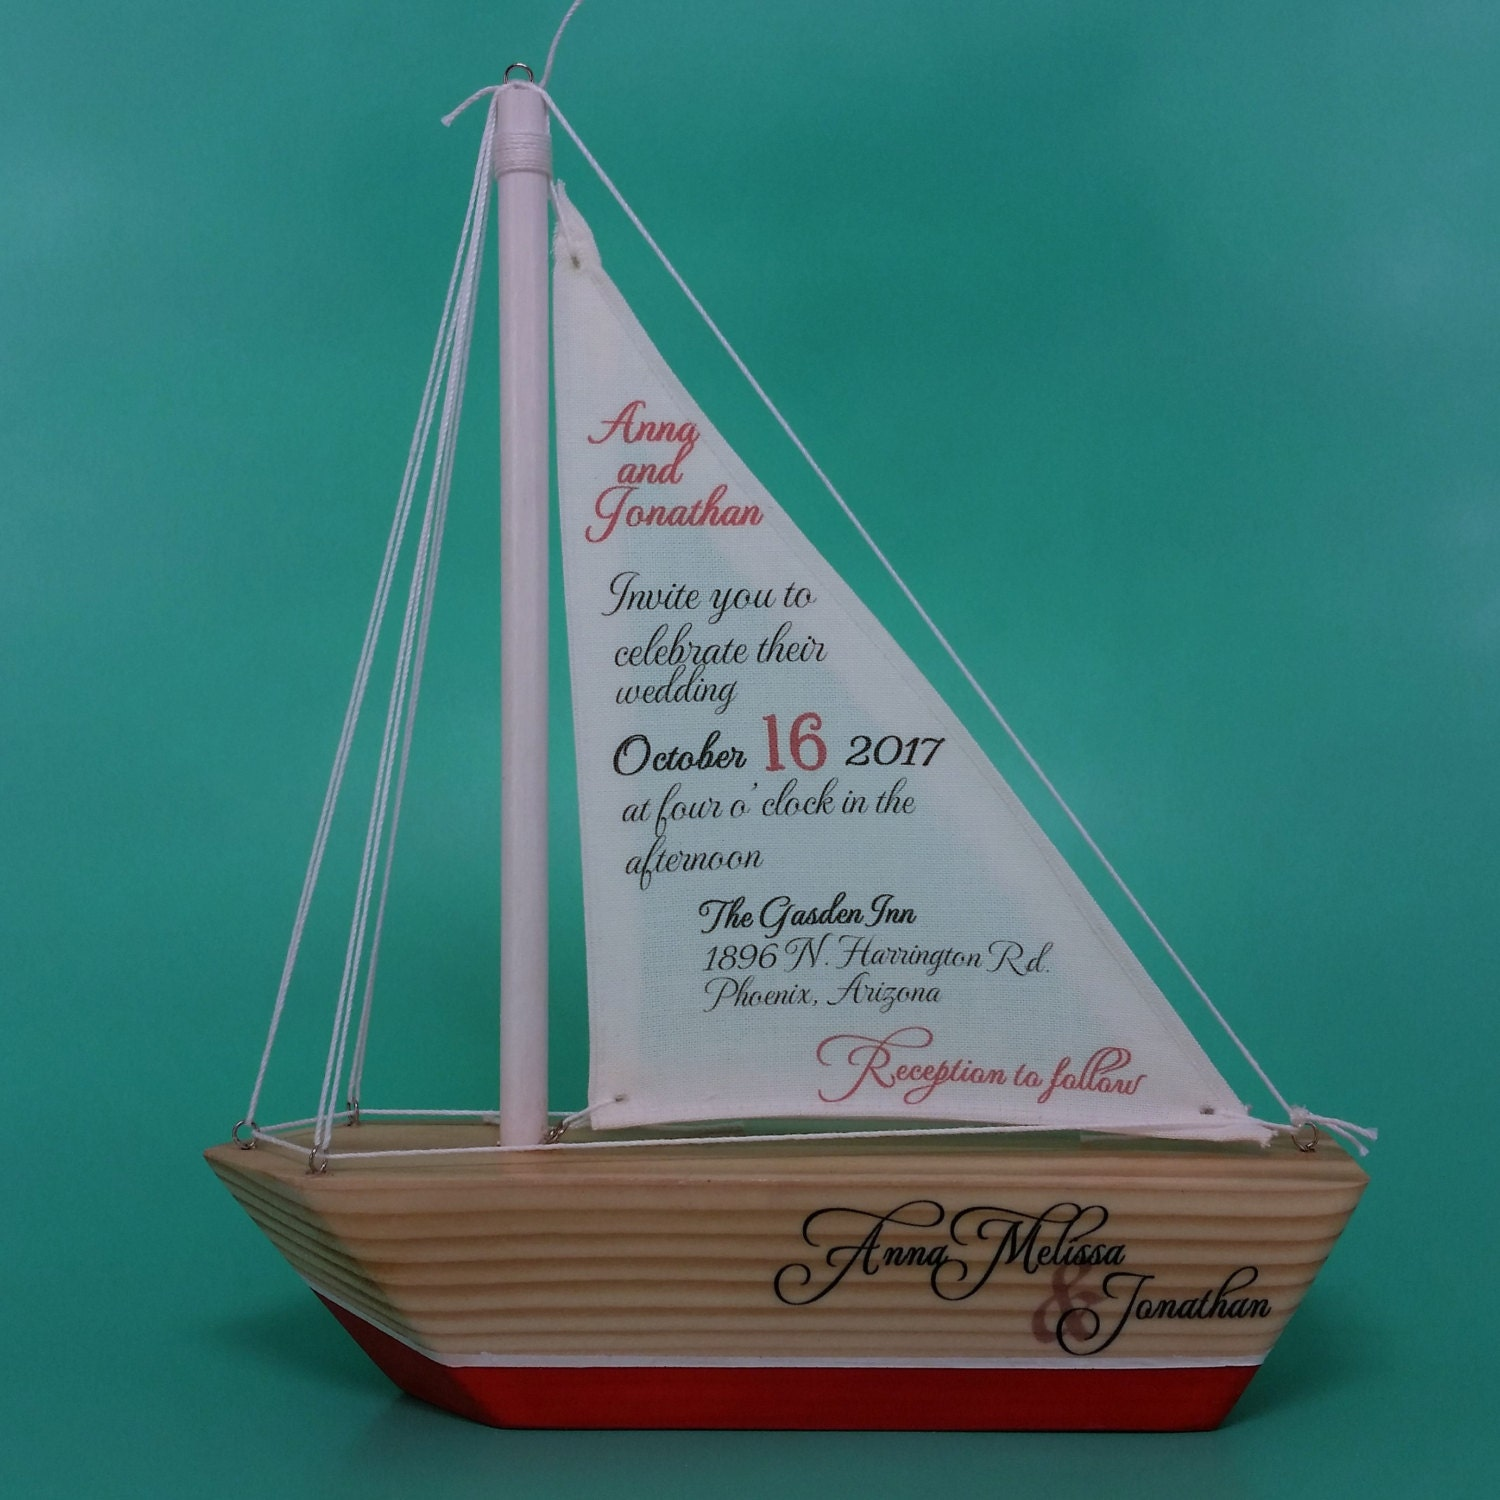 Sailboat Invitations B512 Sample / Wedding Invitations